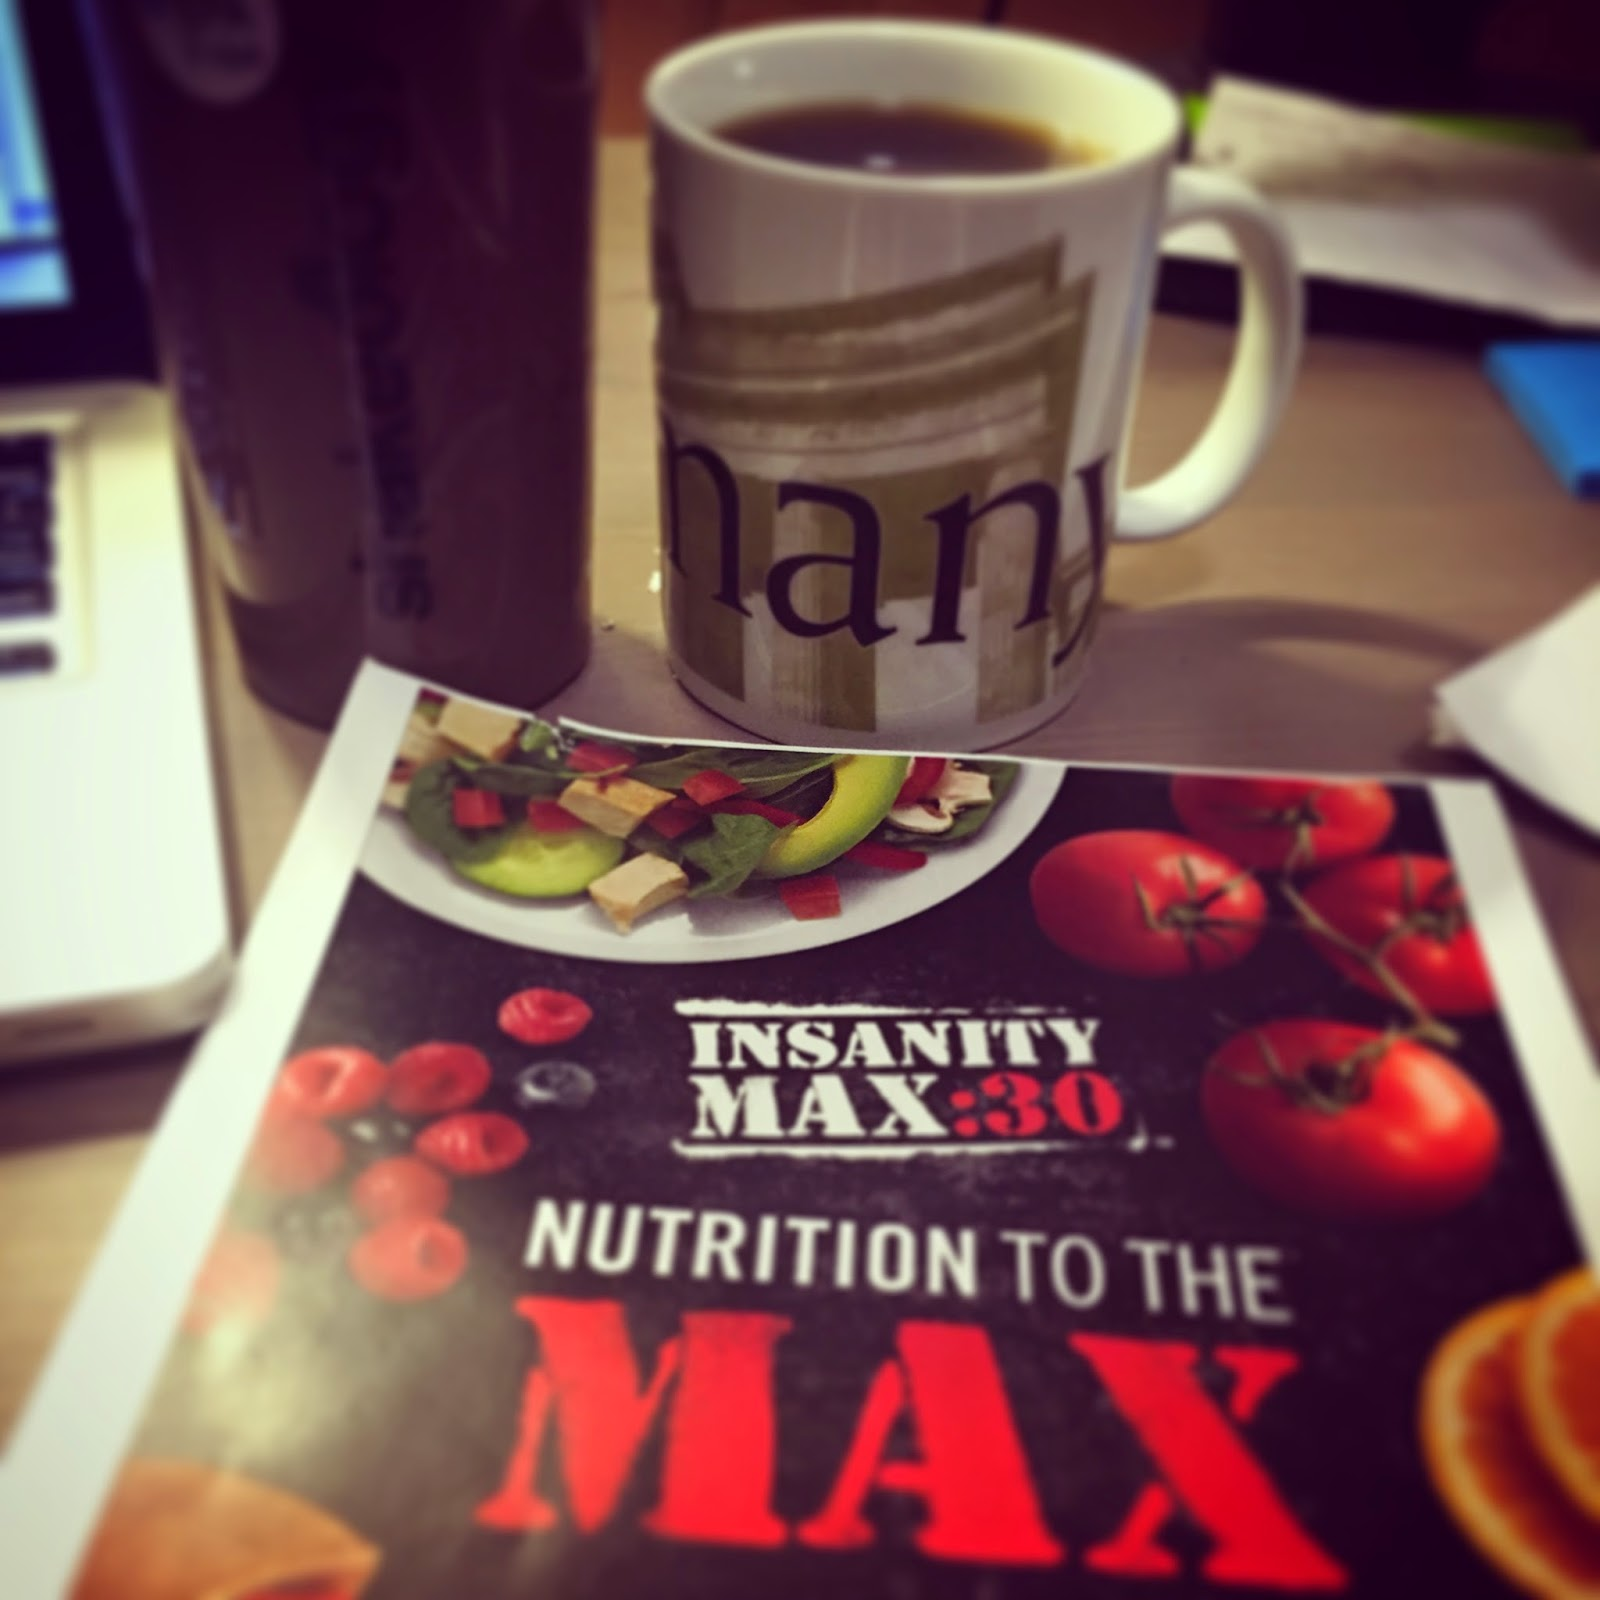 Insanity Max 30 Nutrition Guide and Meal Plan, Melanie Mitro, Progress update